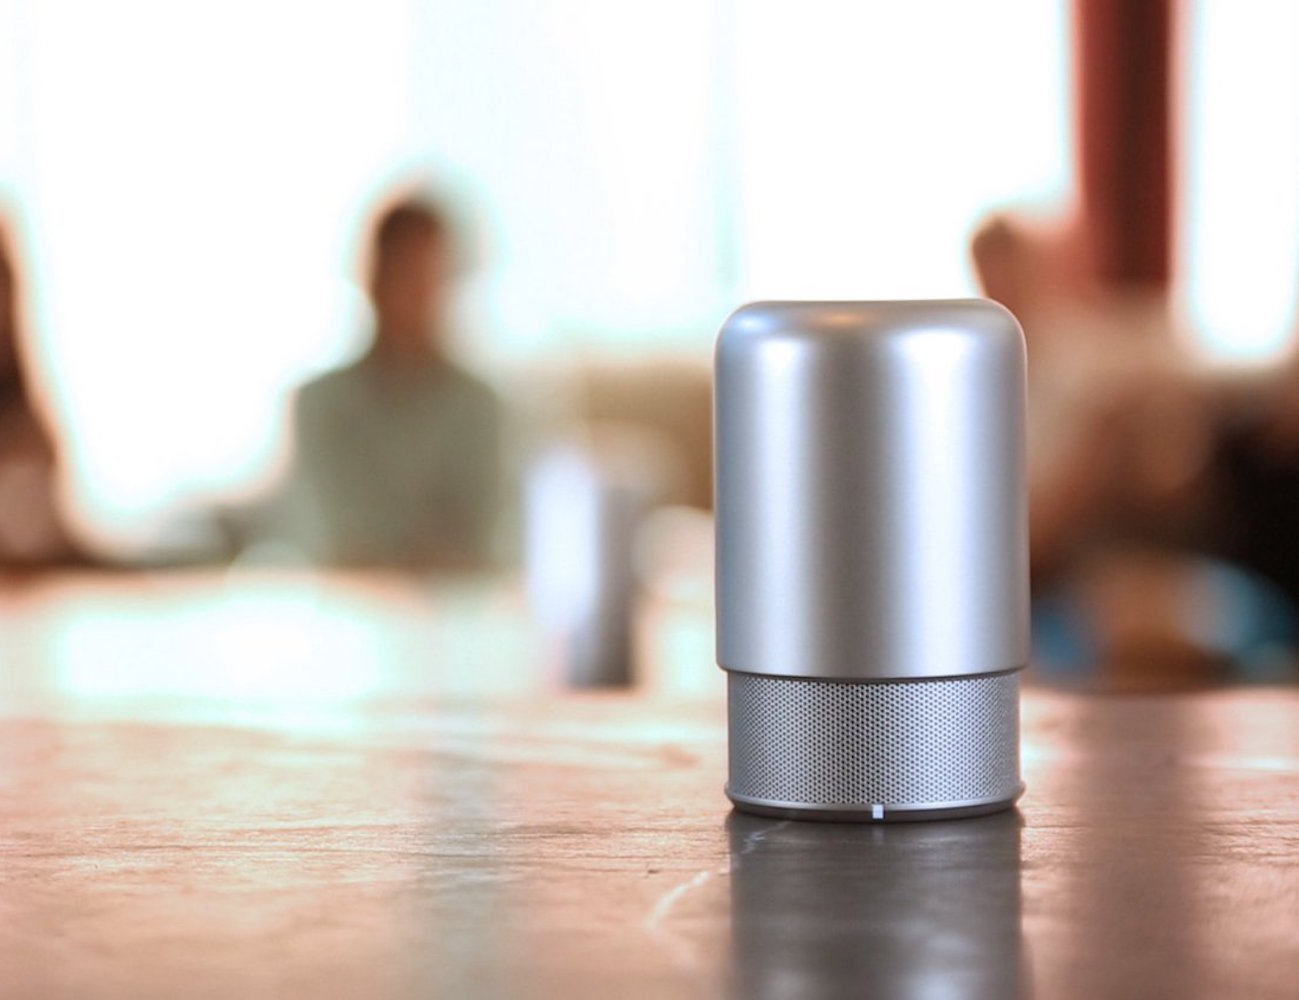 HiddenRadio2 Wireless Bluetooth Speaker